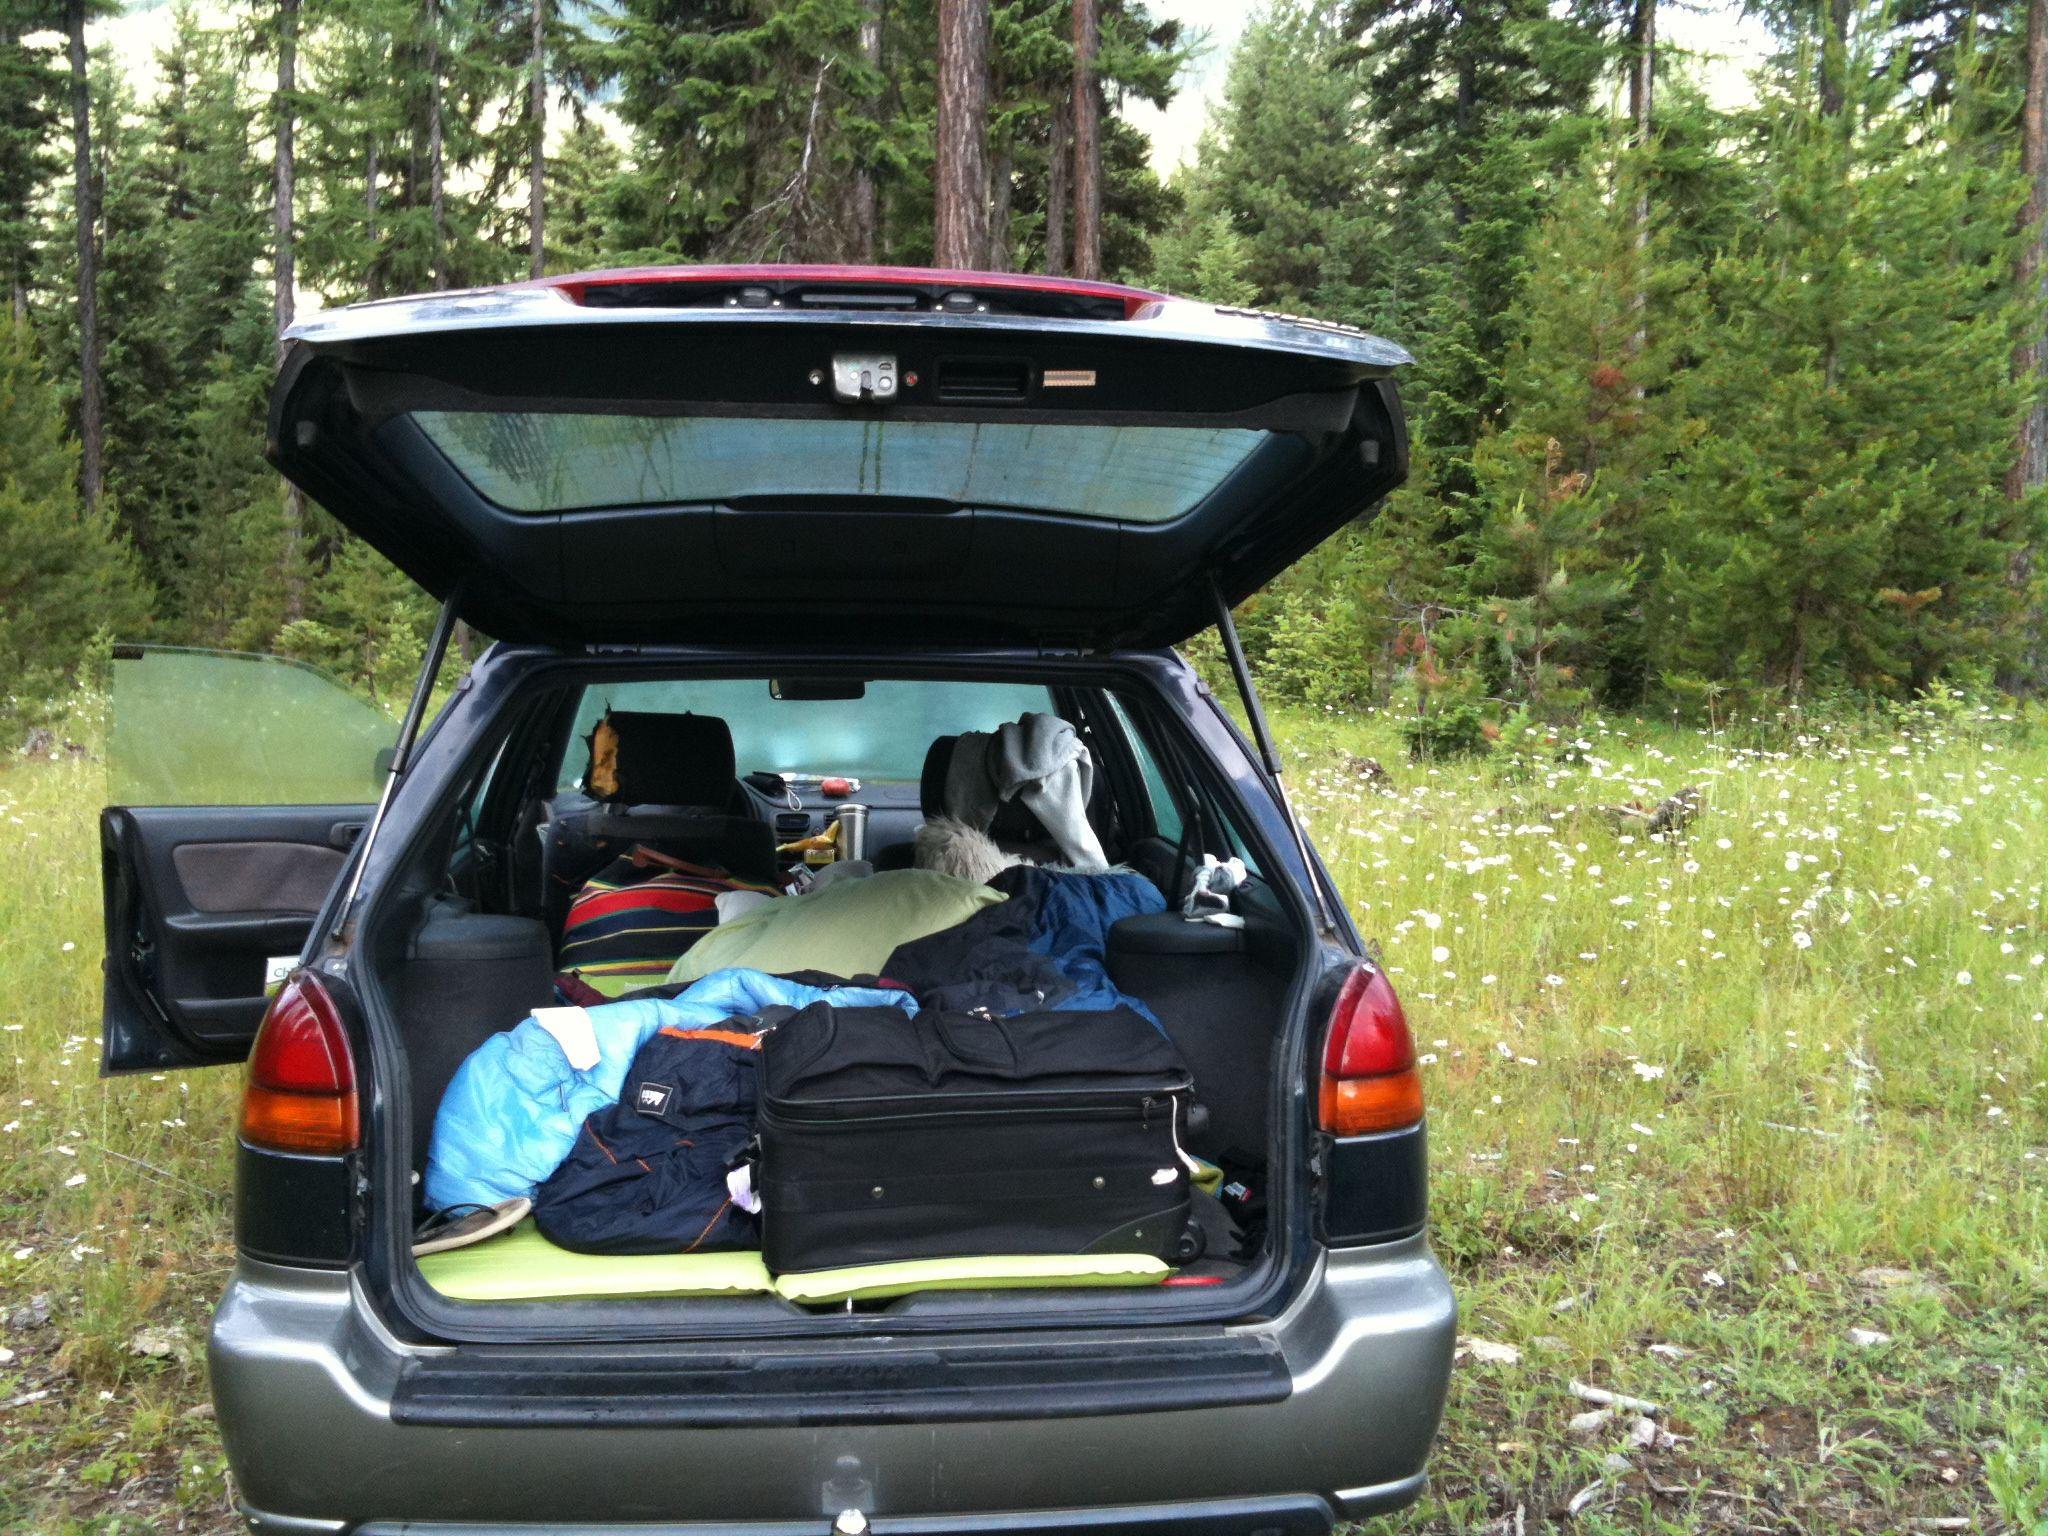 Road Trip Dispersed Camping The Bed Car